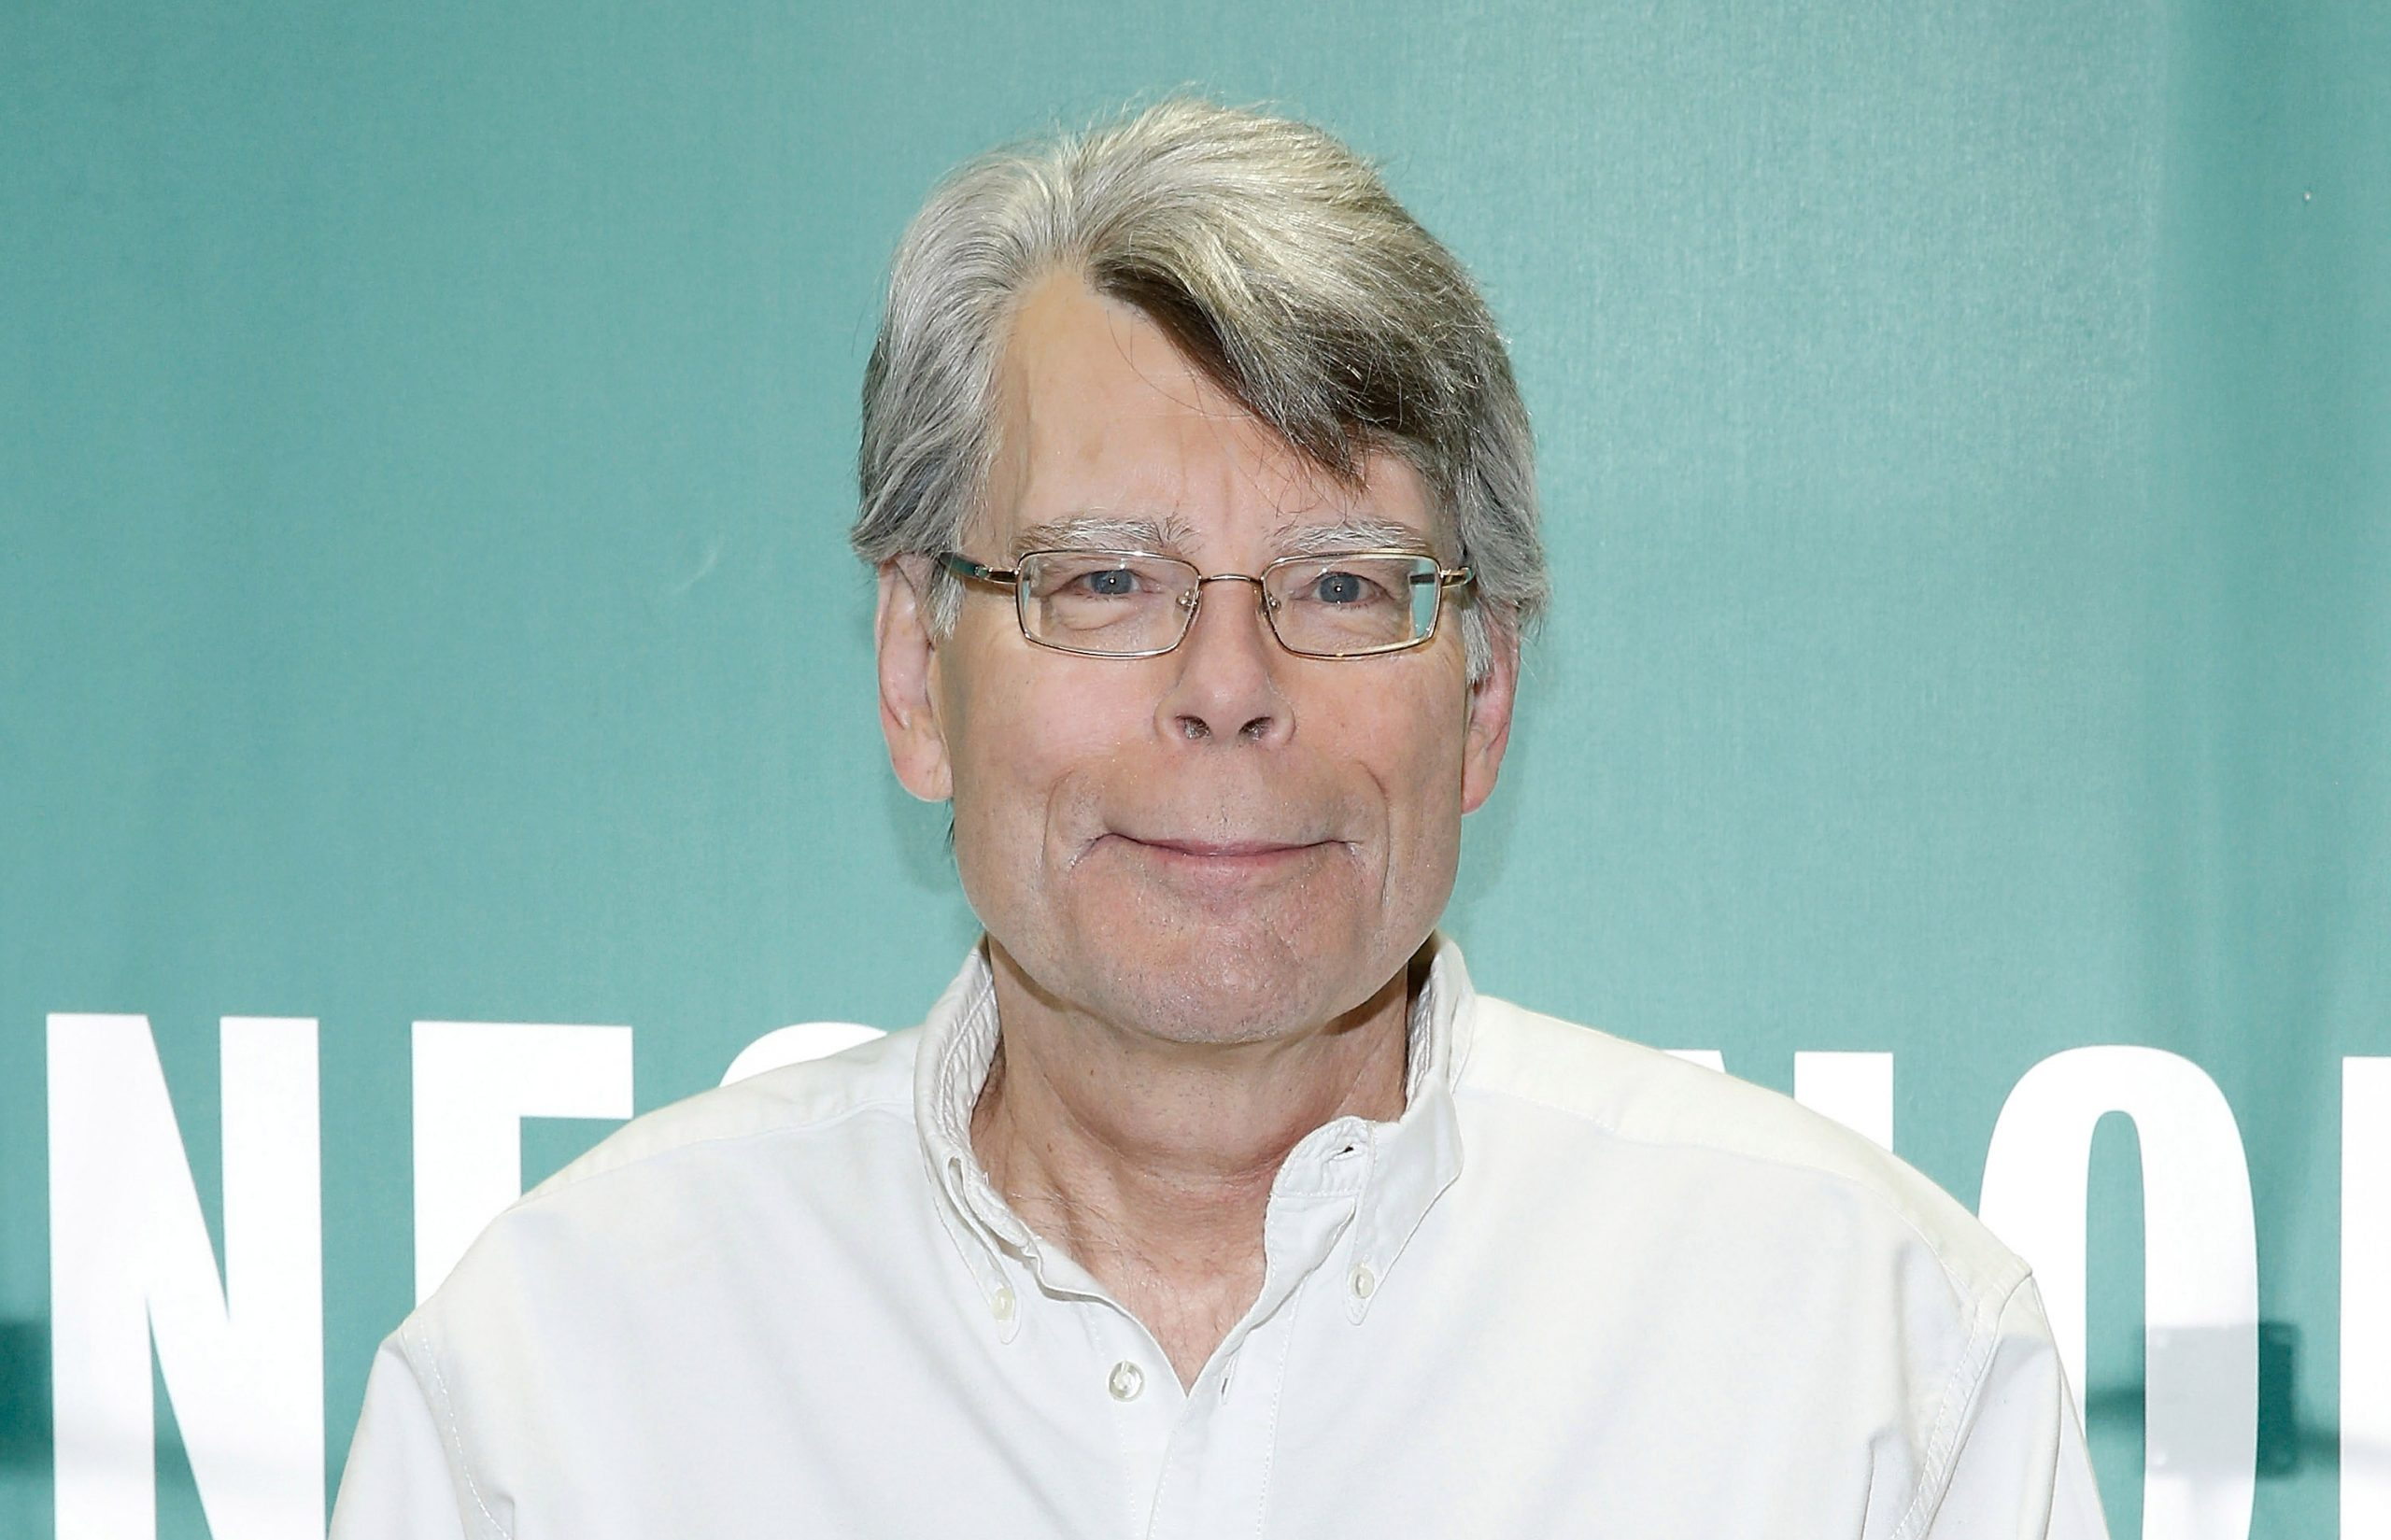 Stephen King in a white shirt